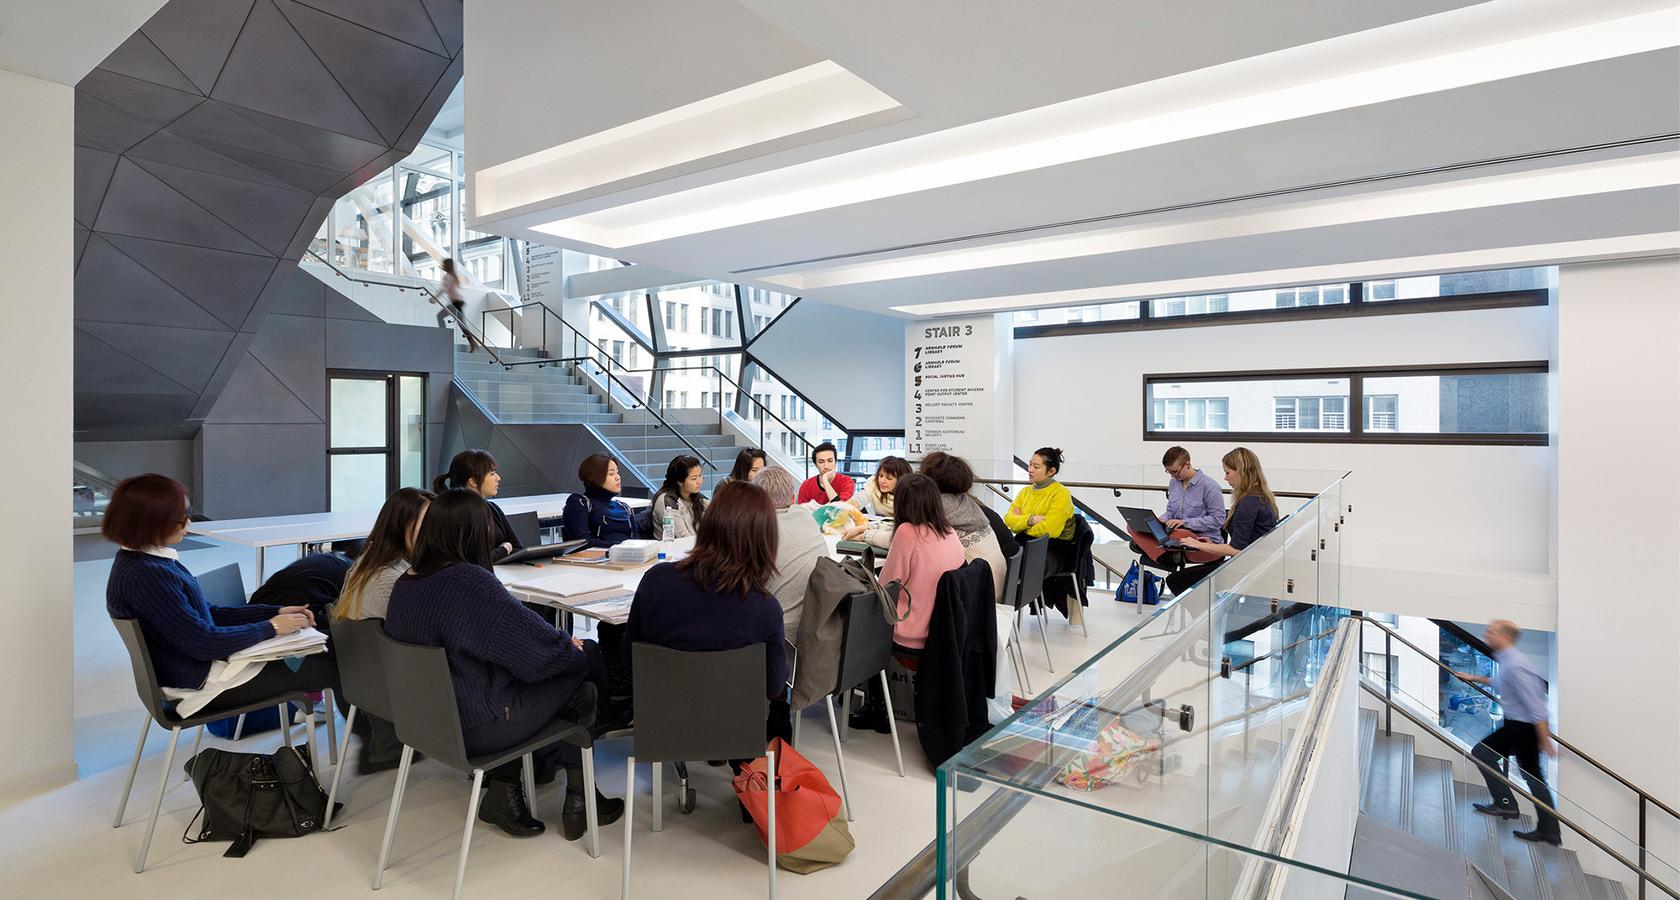 The New School is sometimes considered the school of the future for designer education